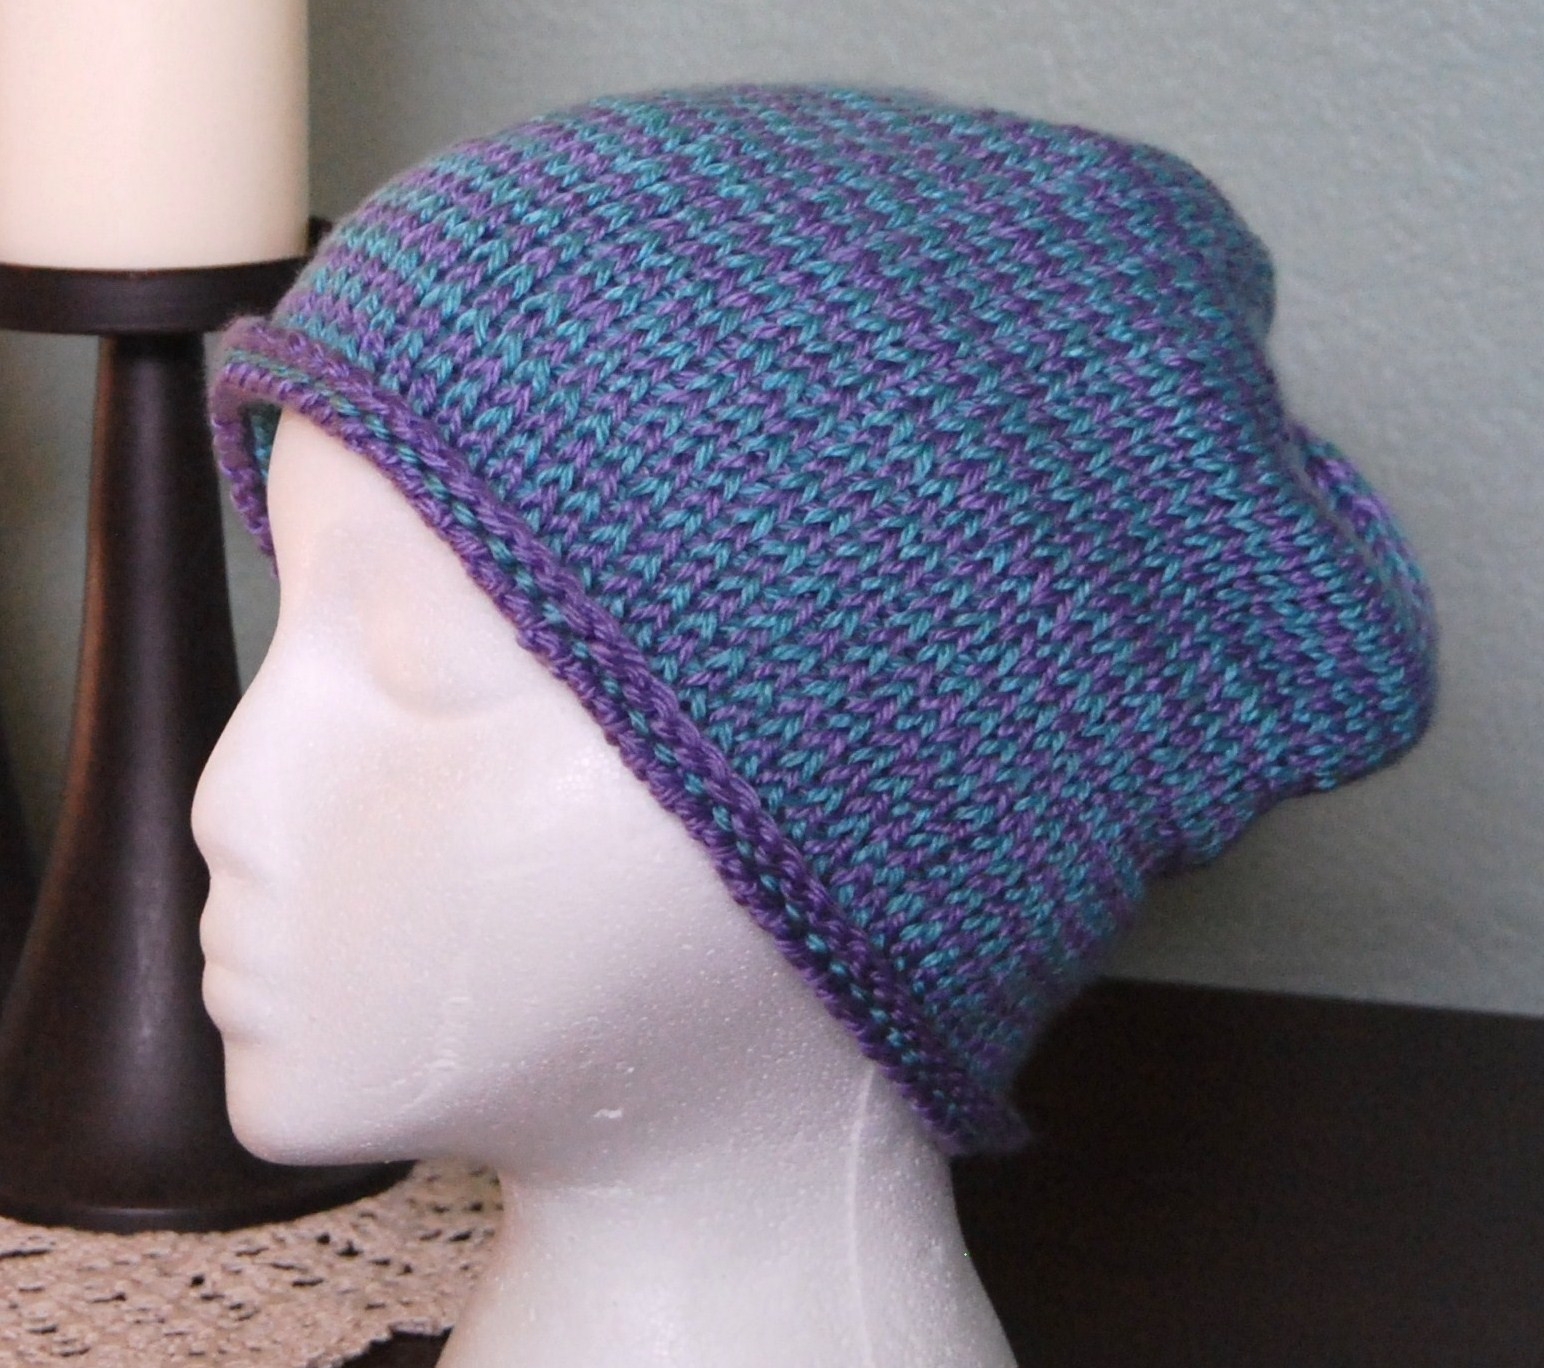 Best Of Best Tunisian Crochet Hat Free Pattern Crochet Stitches for Hats Of Lovely 46 Models Crochet Stitches for Hats